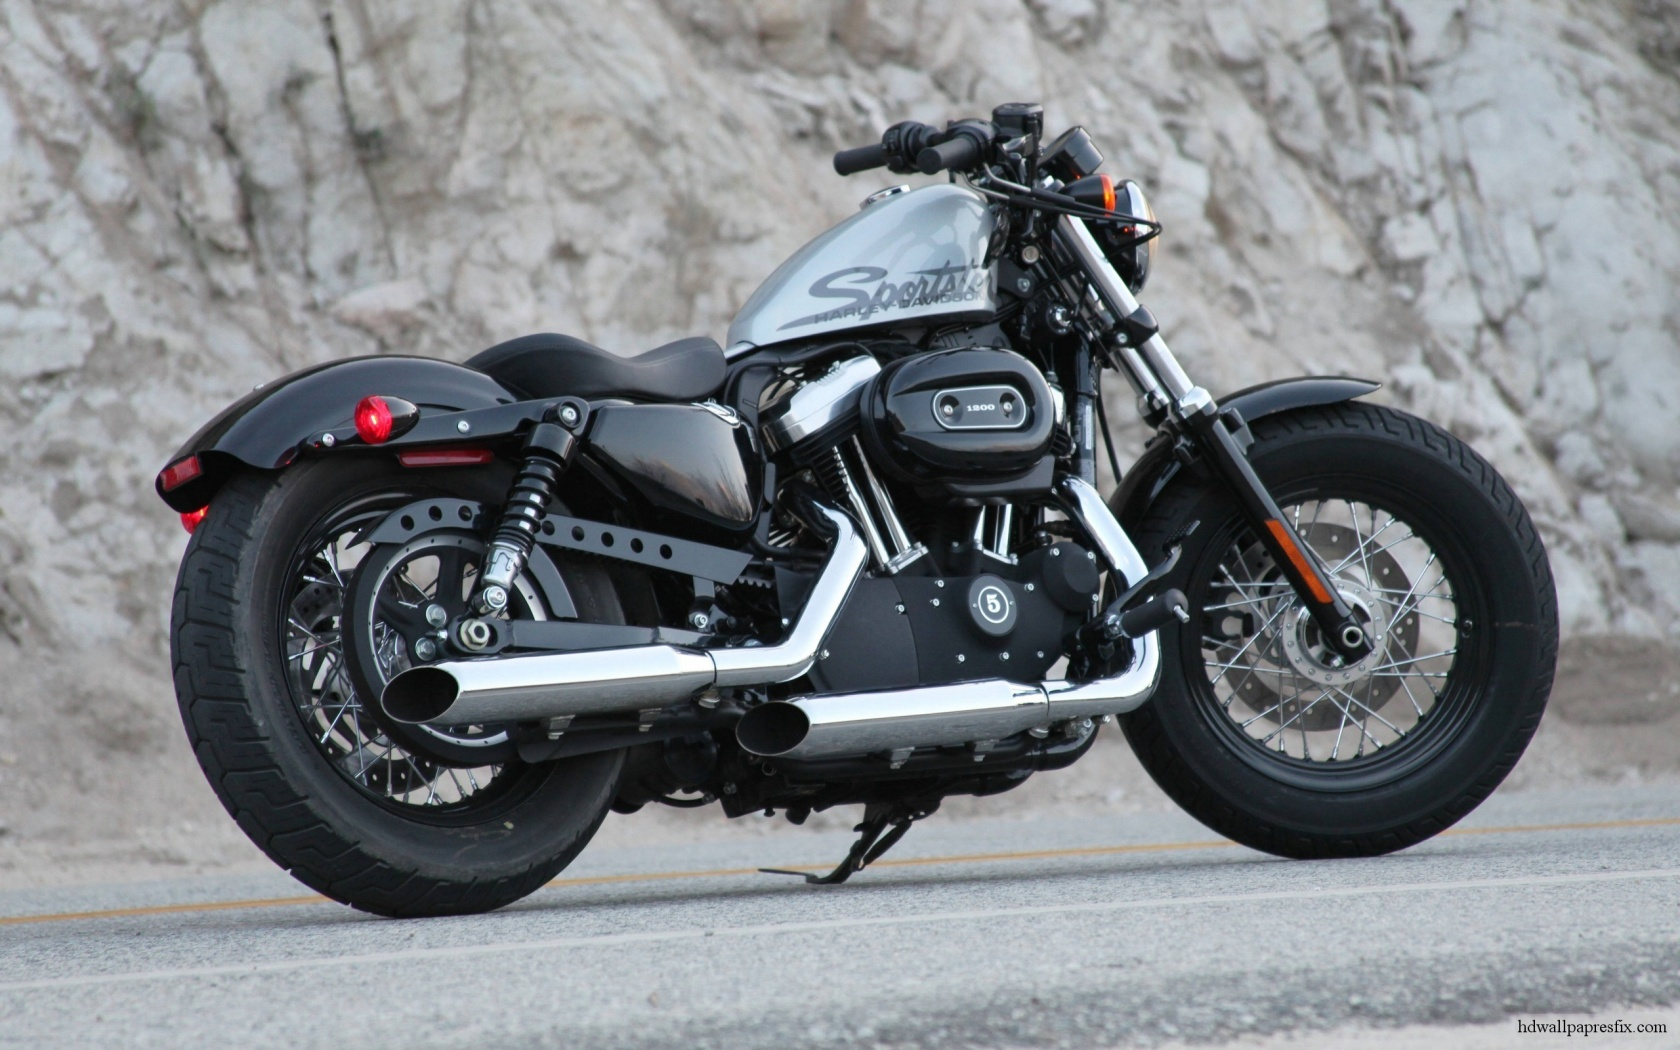 Download Harley Davidson 883 2048 X 2048 Wallpapers: Harley Davidson Motorcycles Pictures